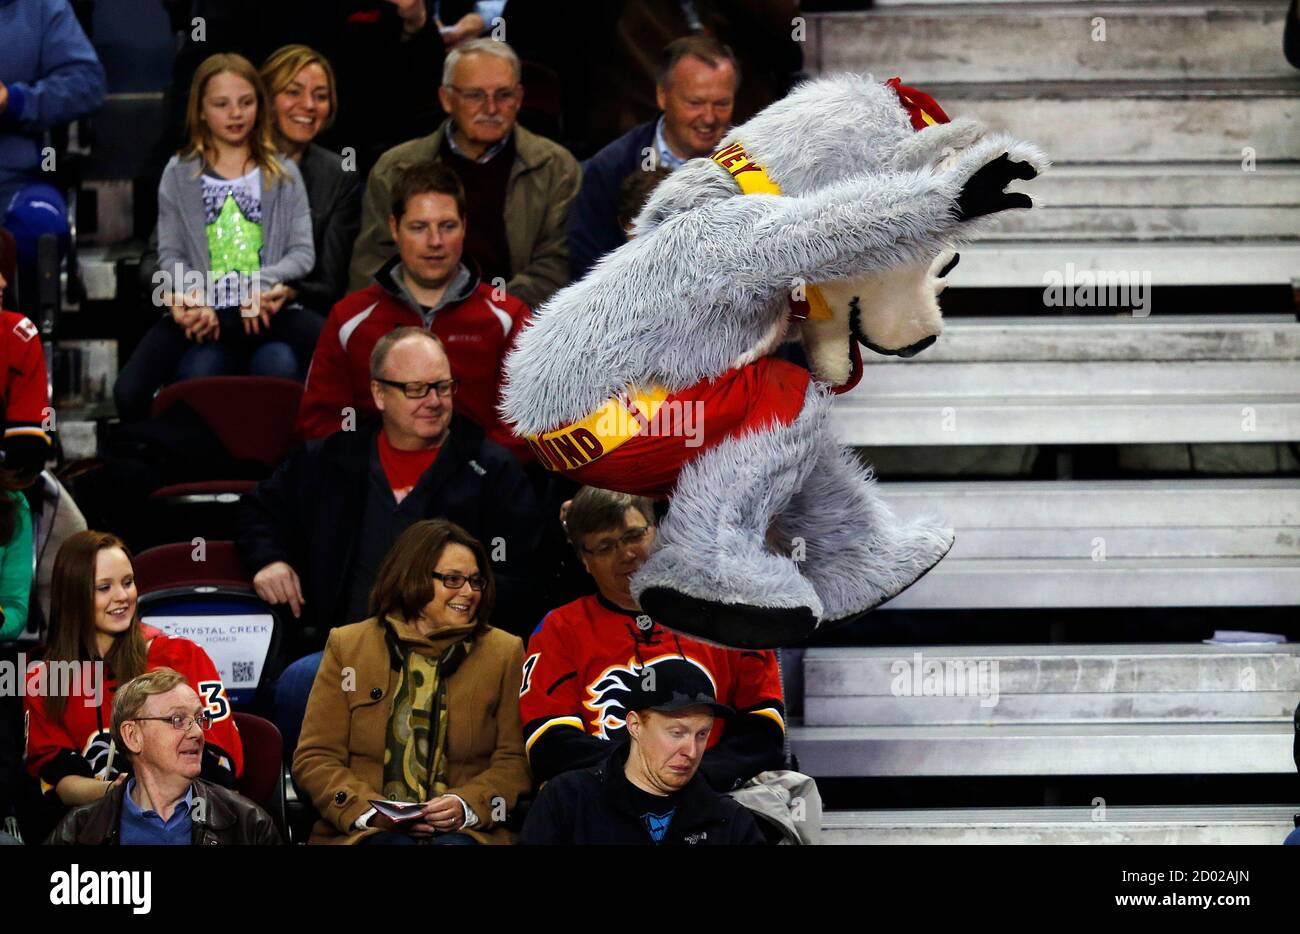 Harvey The Hound The Calgary Flames Mascot Jumps Over A Fan S Head During The Third Period